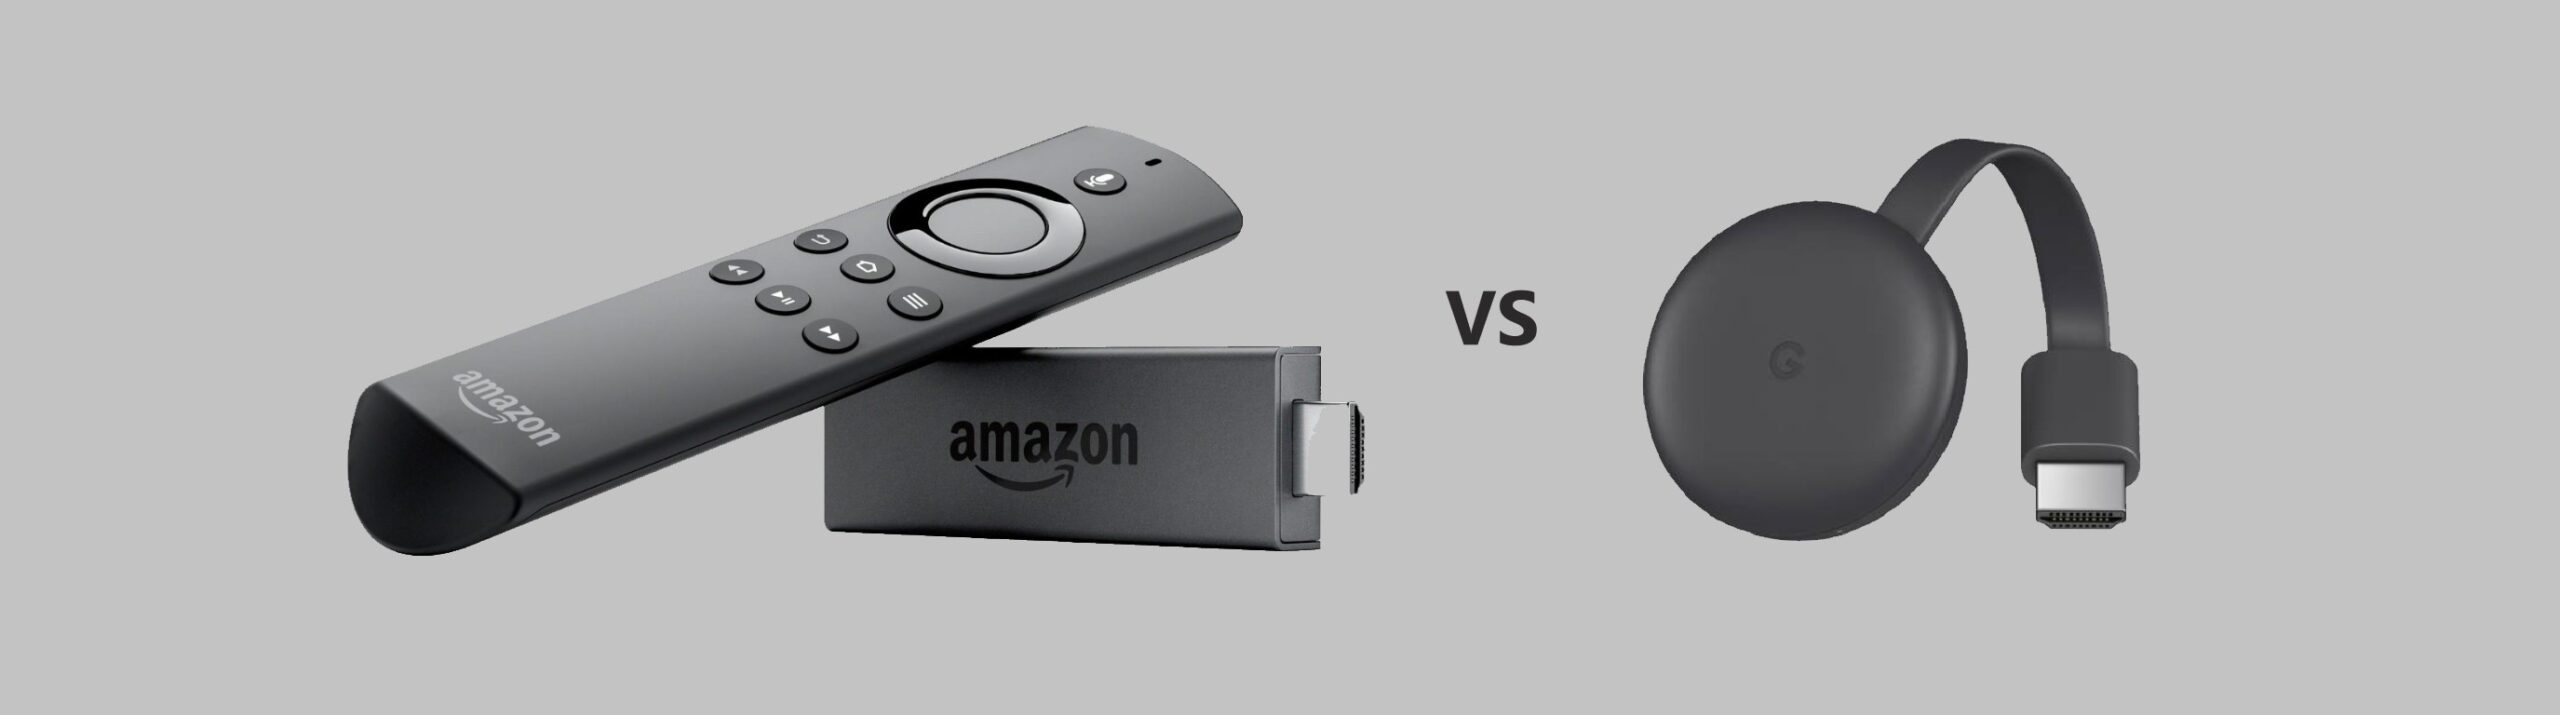 Chromecast vs Fire Stick – Comparison and Which one is Best?